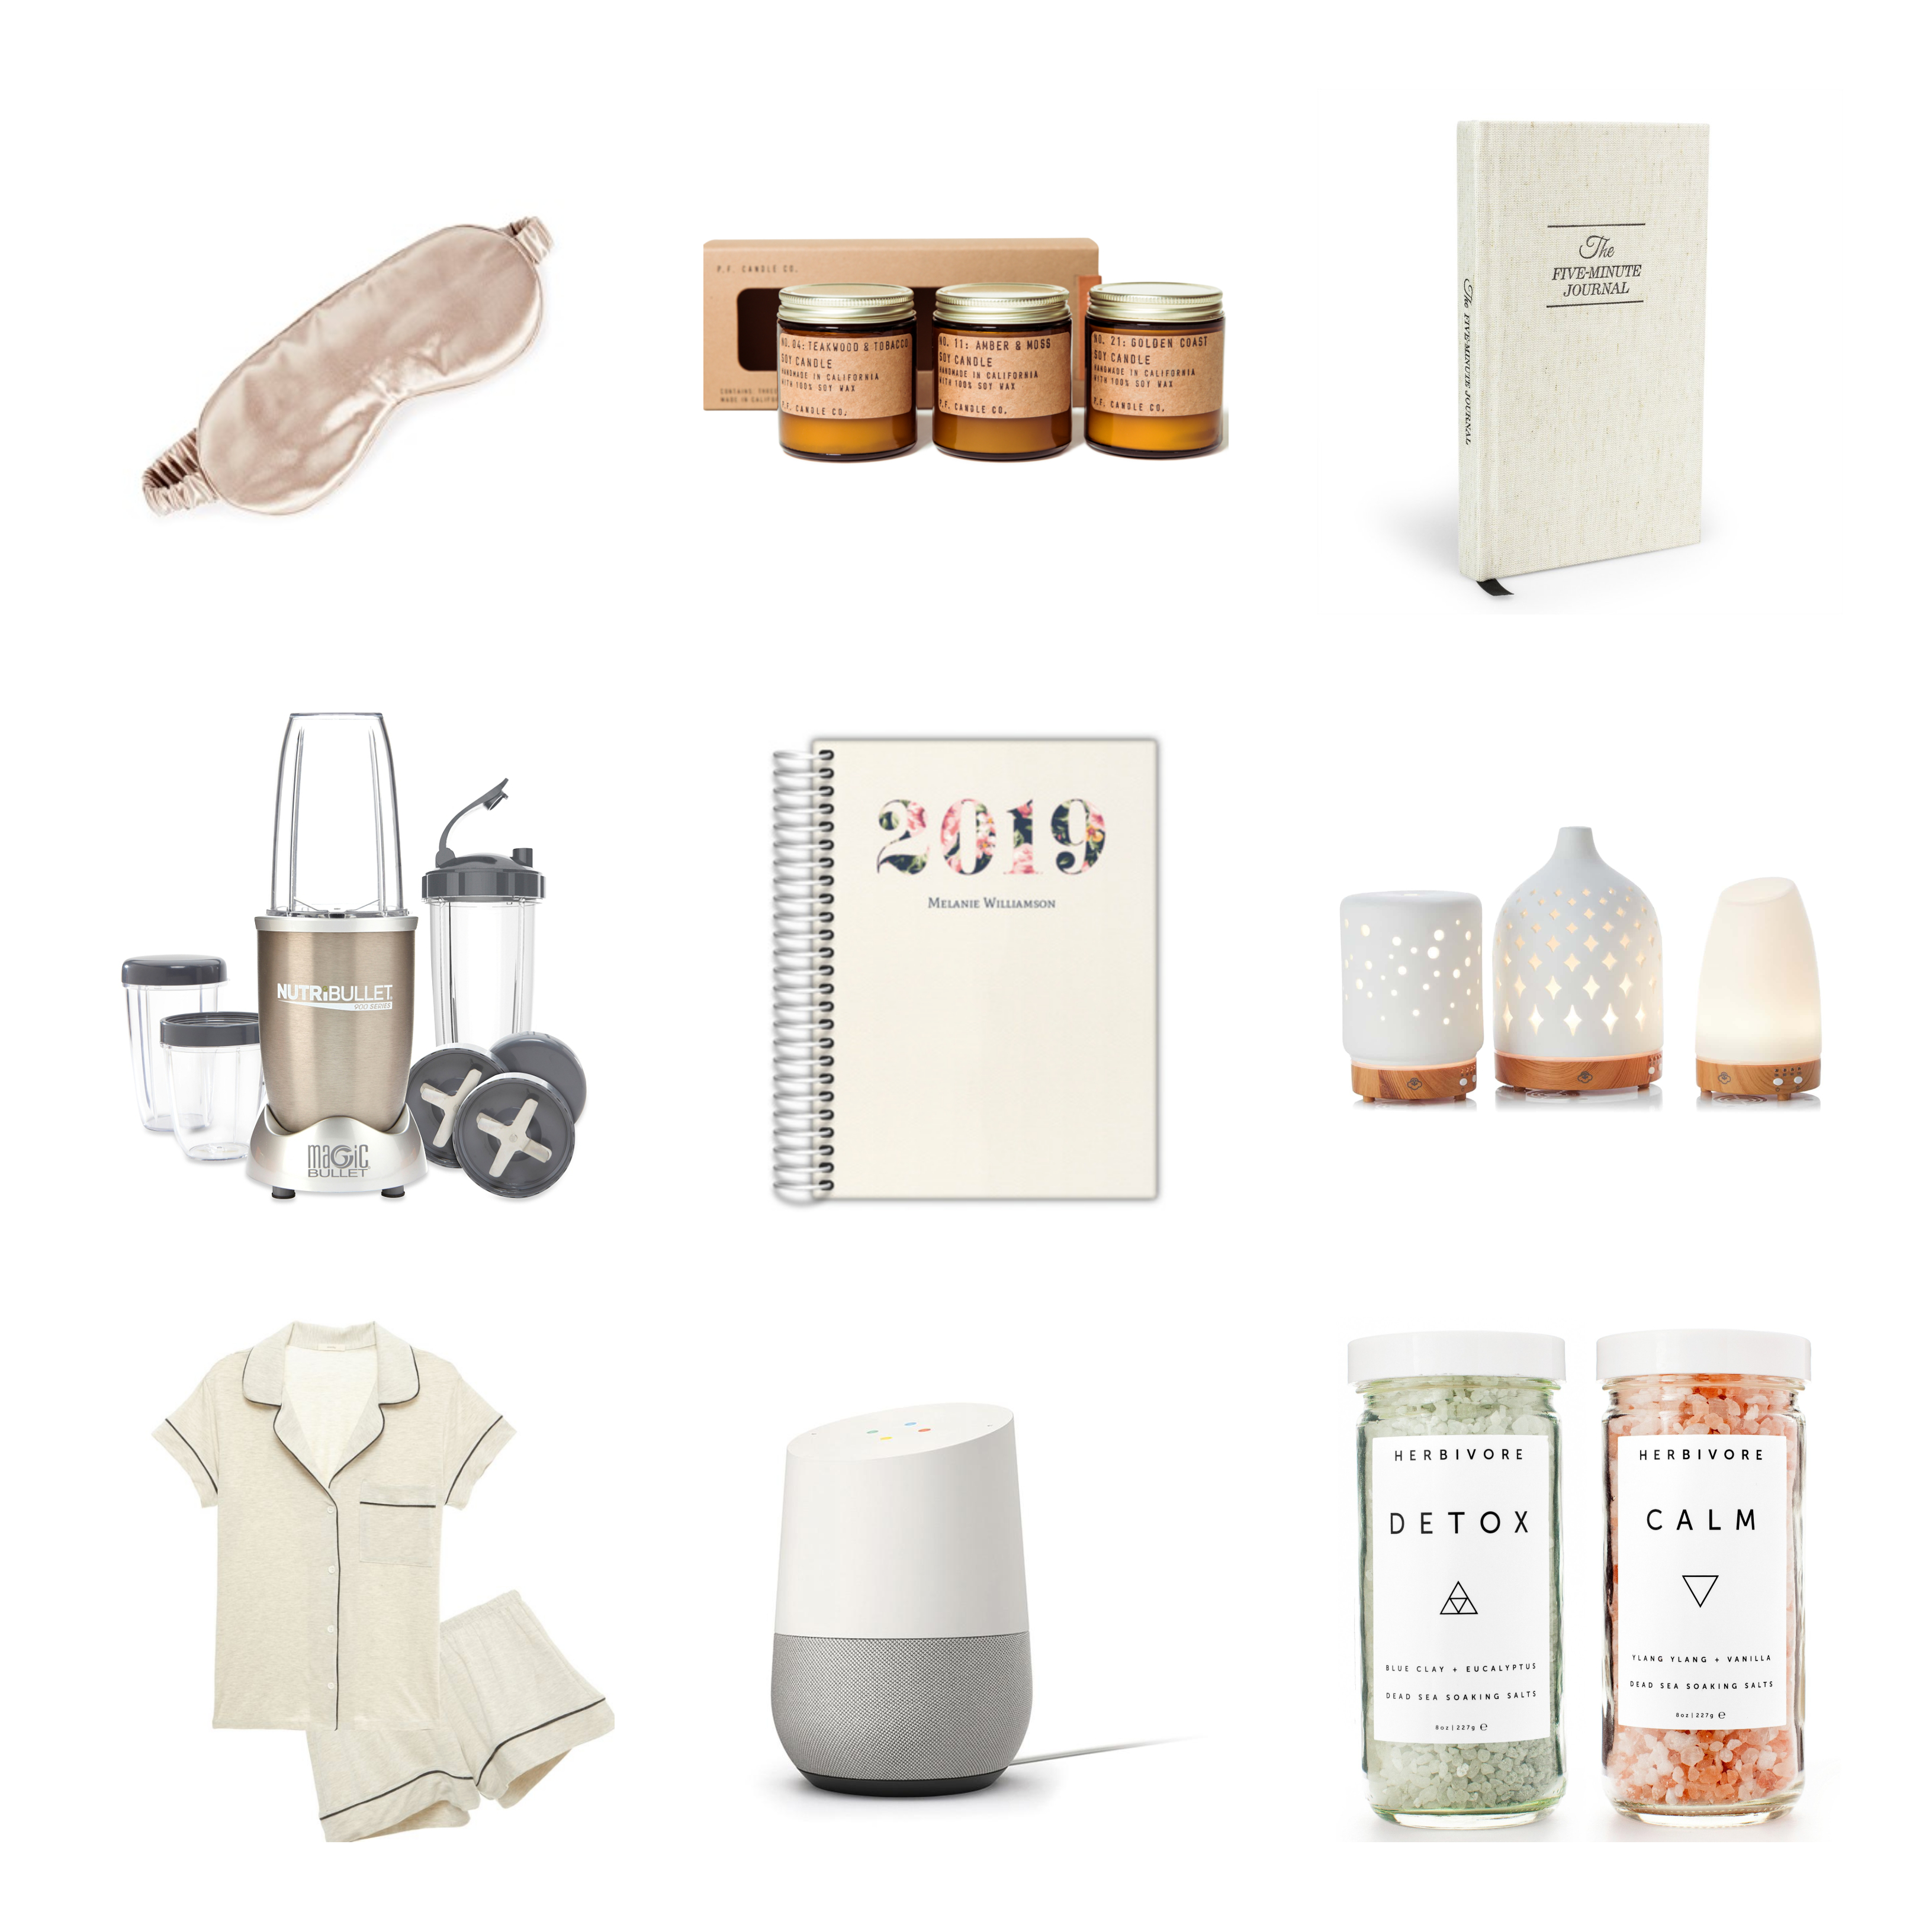 A Gift Guide To Inspire Health & Wellness | Adorned With Love